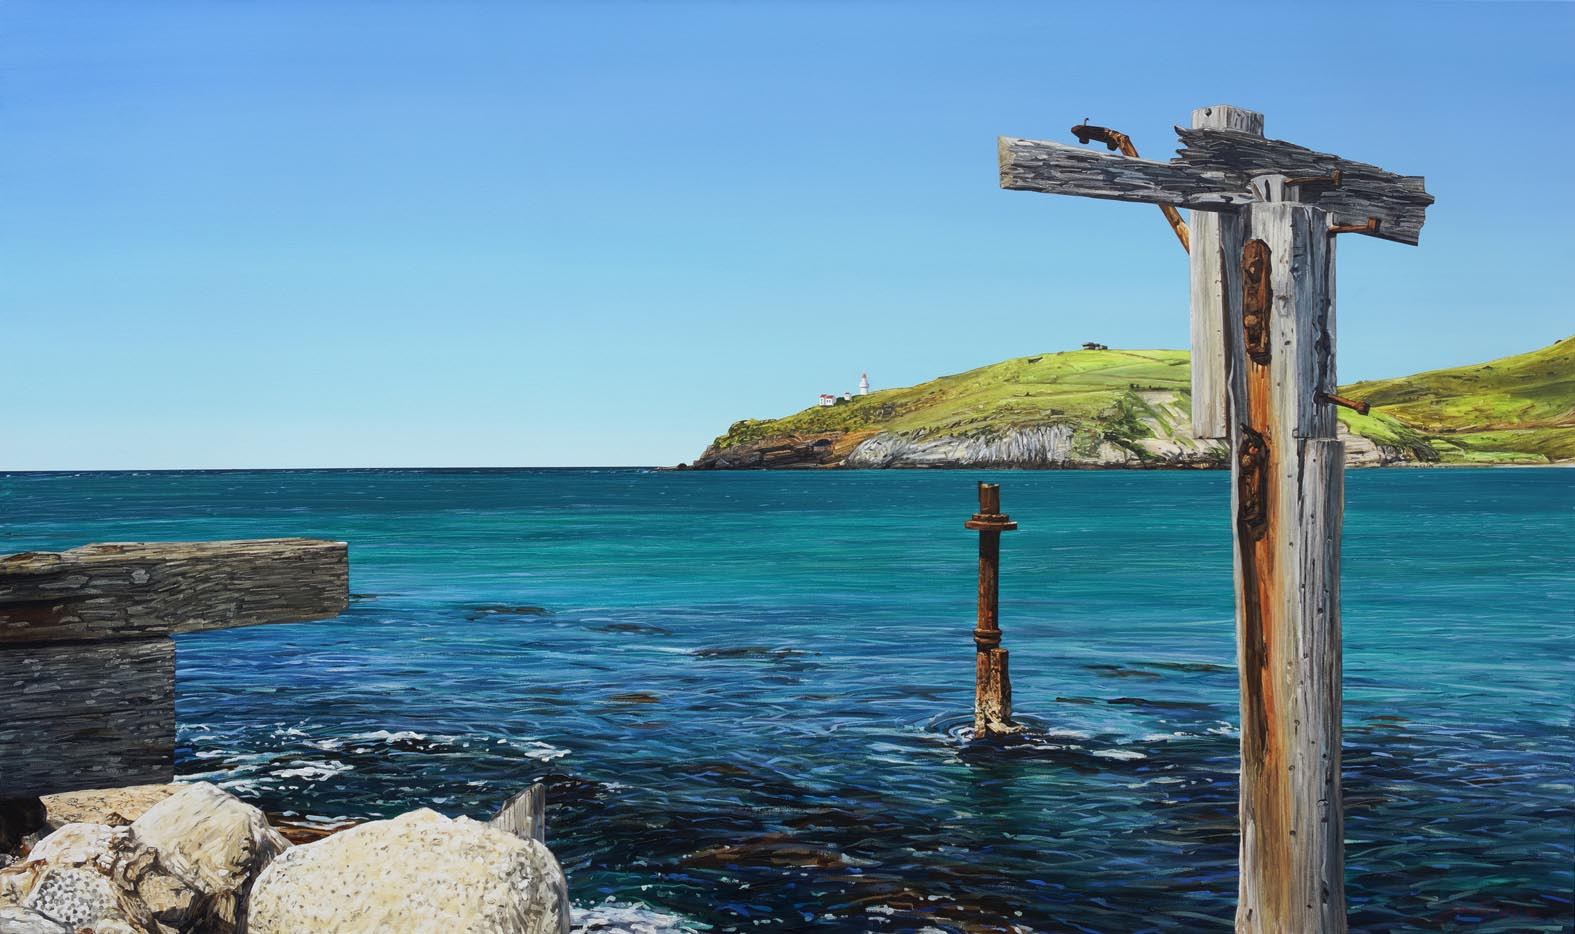 The Spit, Aramoana (cast away, shore leave is over) oil on canavs  200 x 118cm